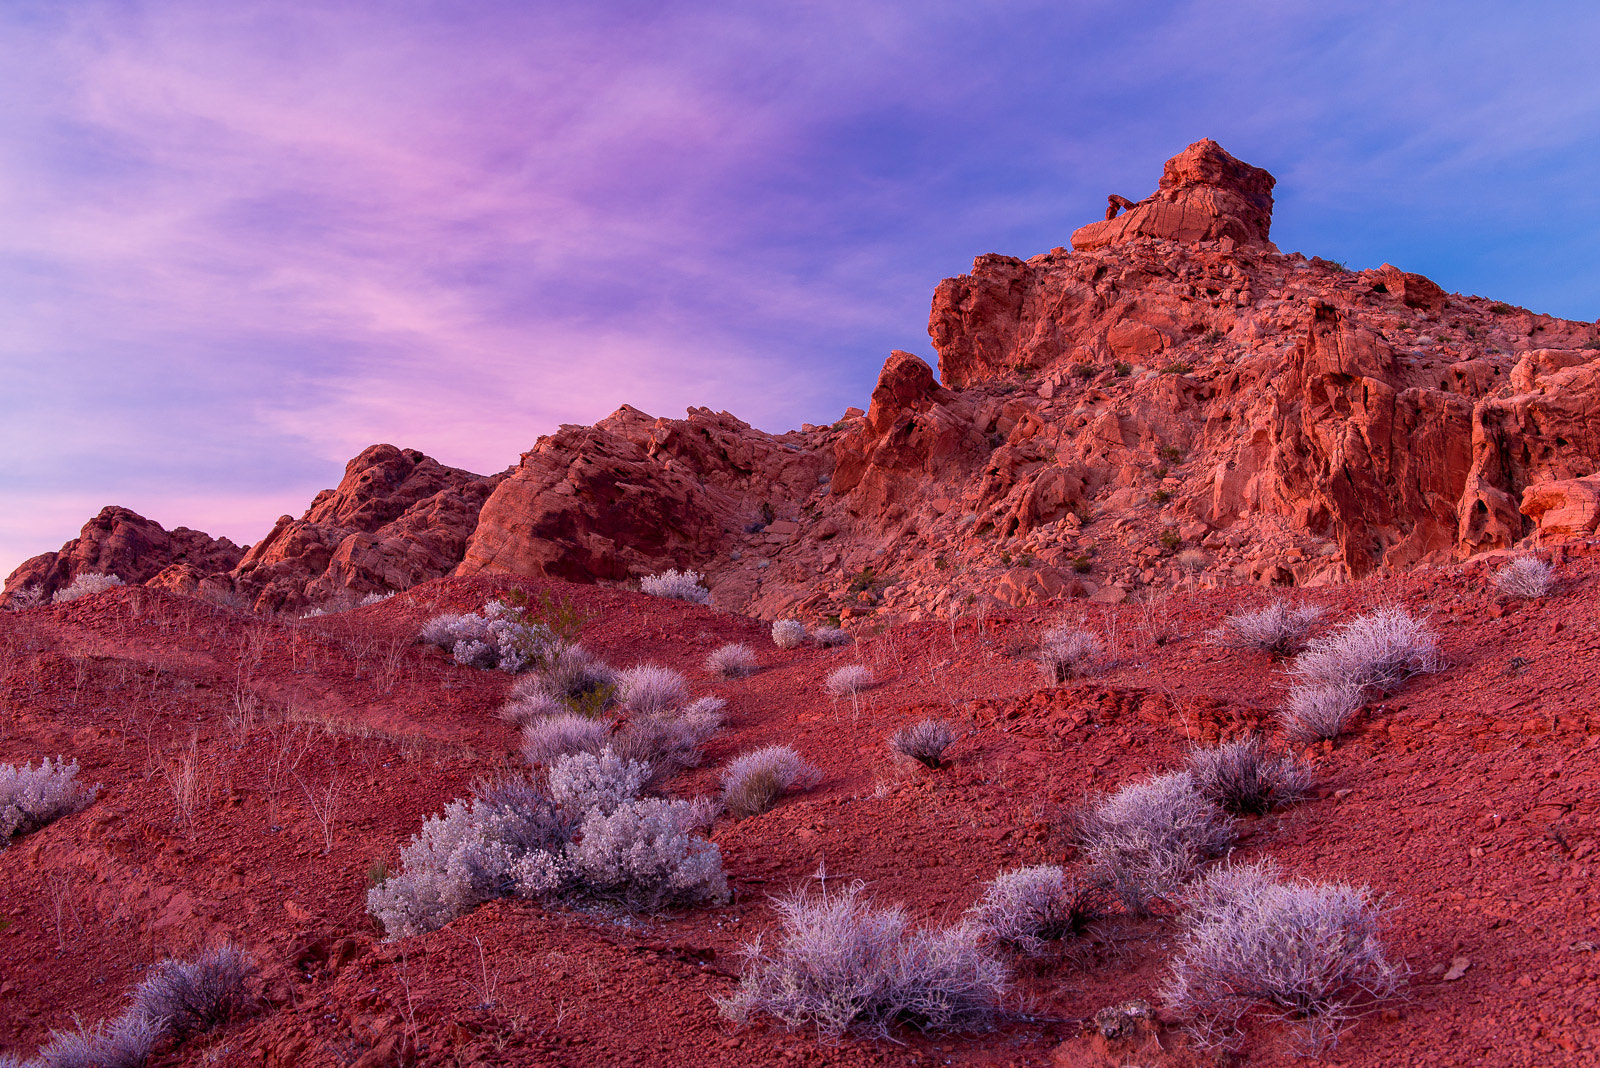 Photograph Silver Sage in the Valley of Fire by Russ Colletta on 500px